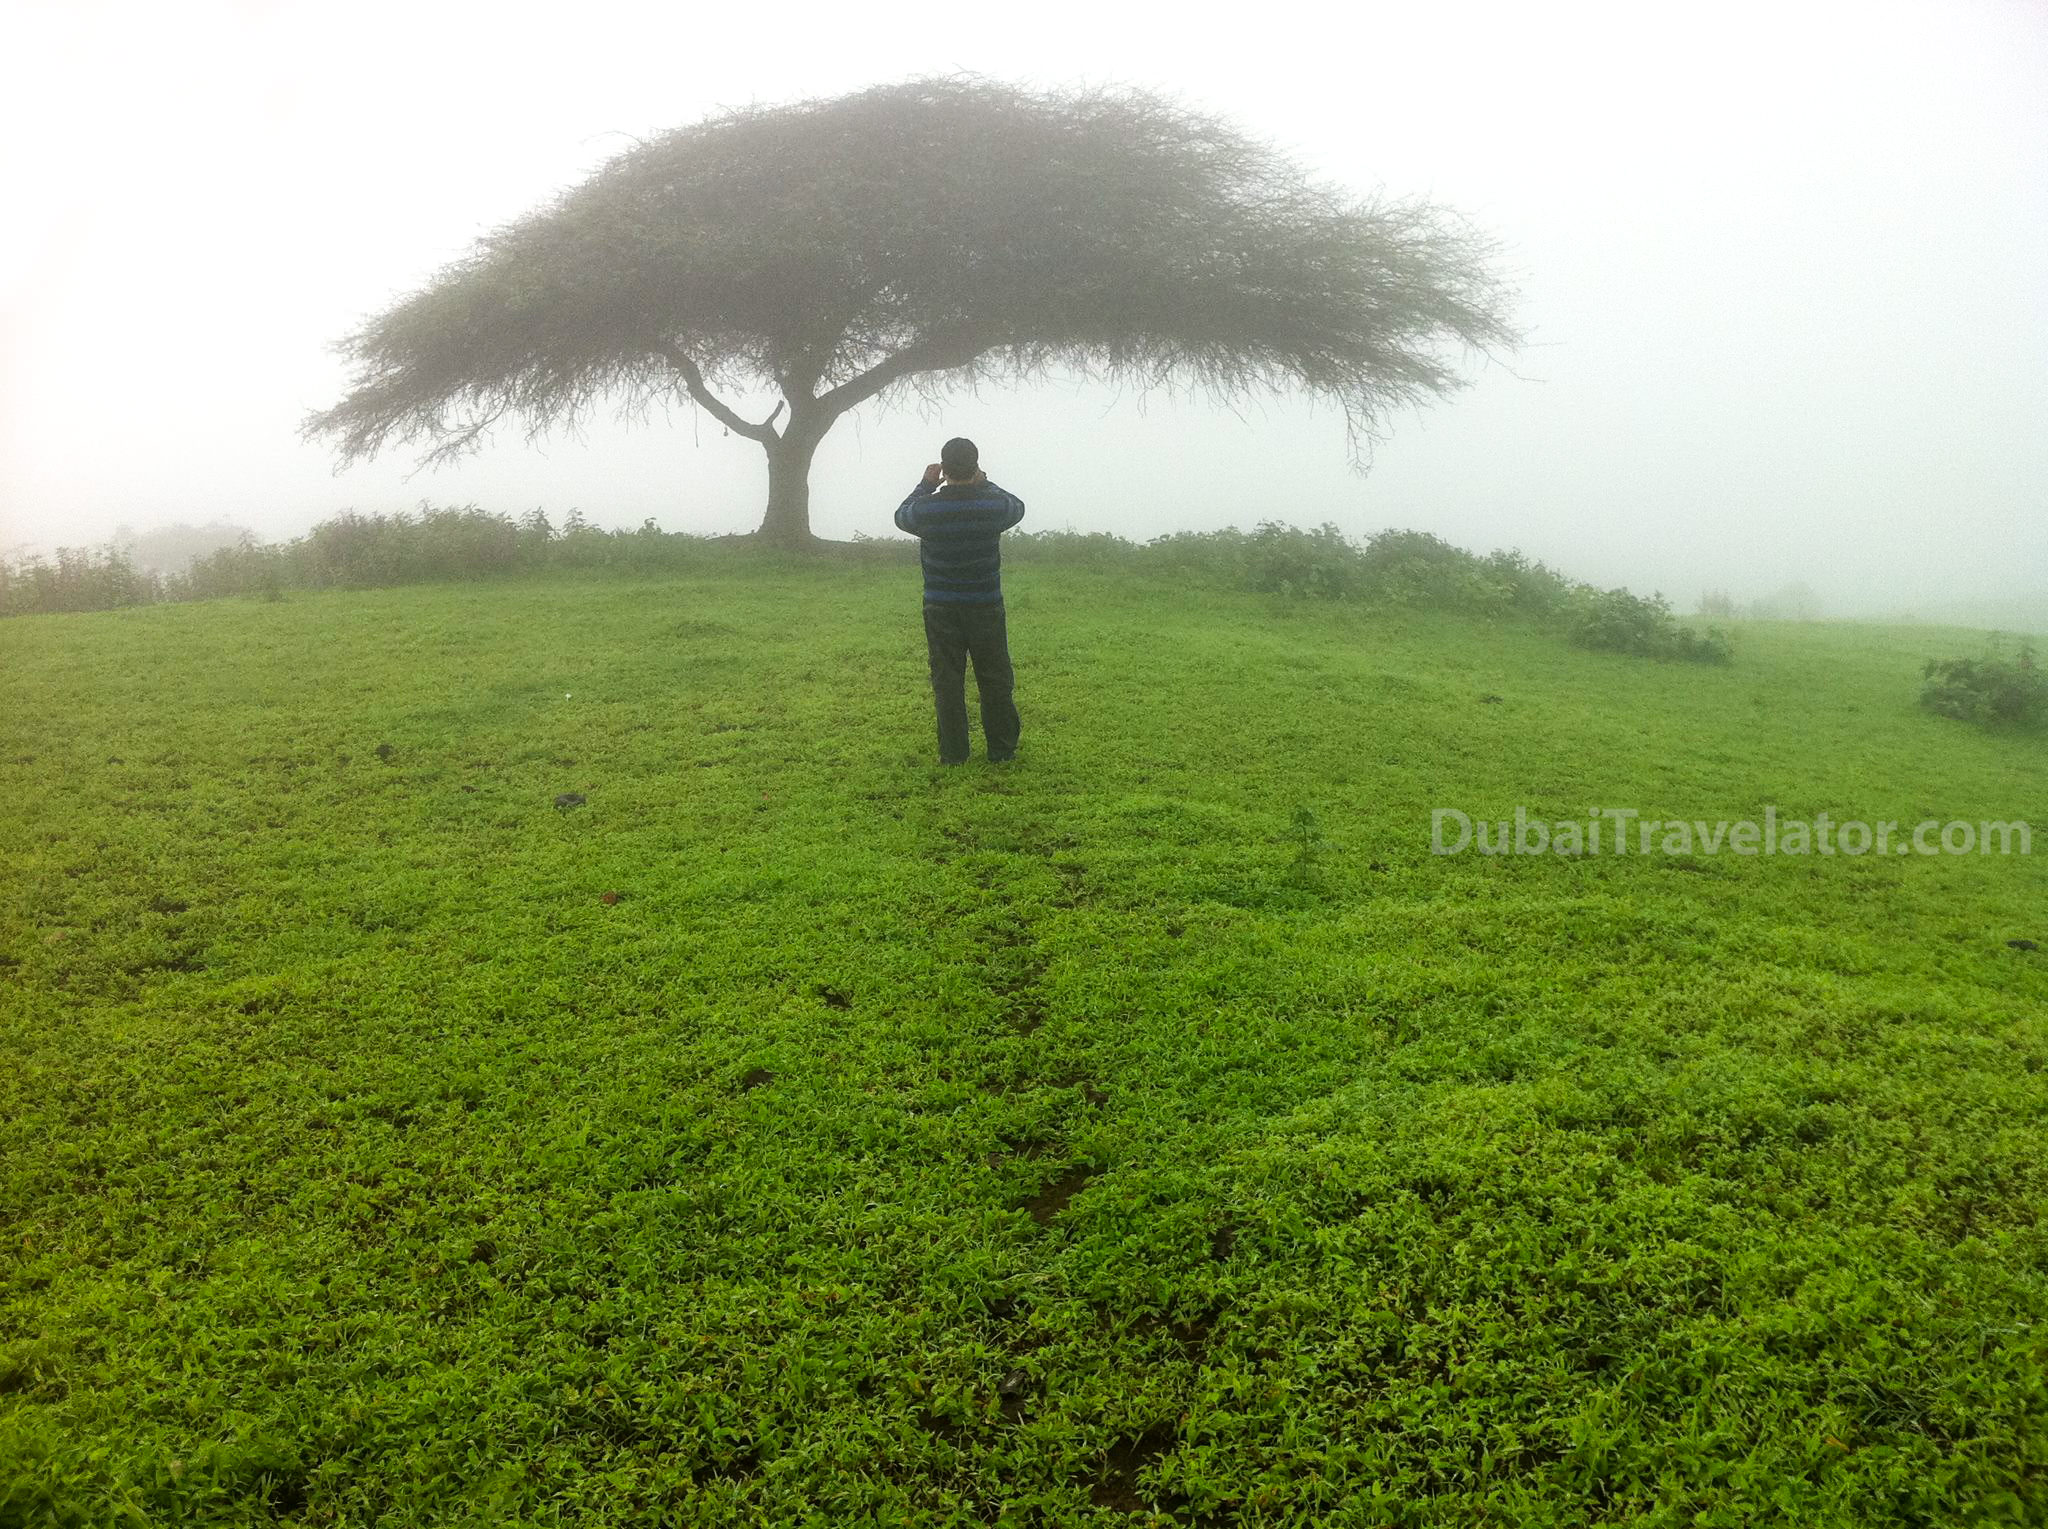 How to go to Salalah from Dubai?